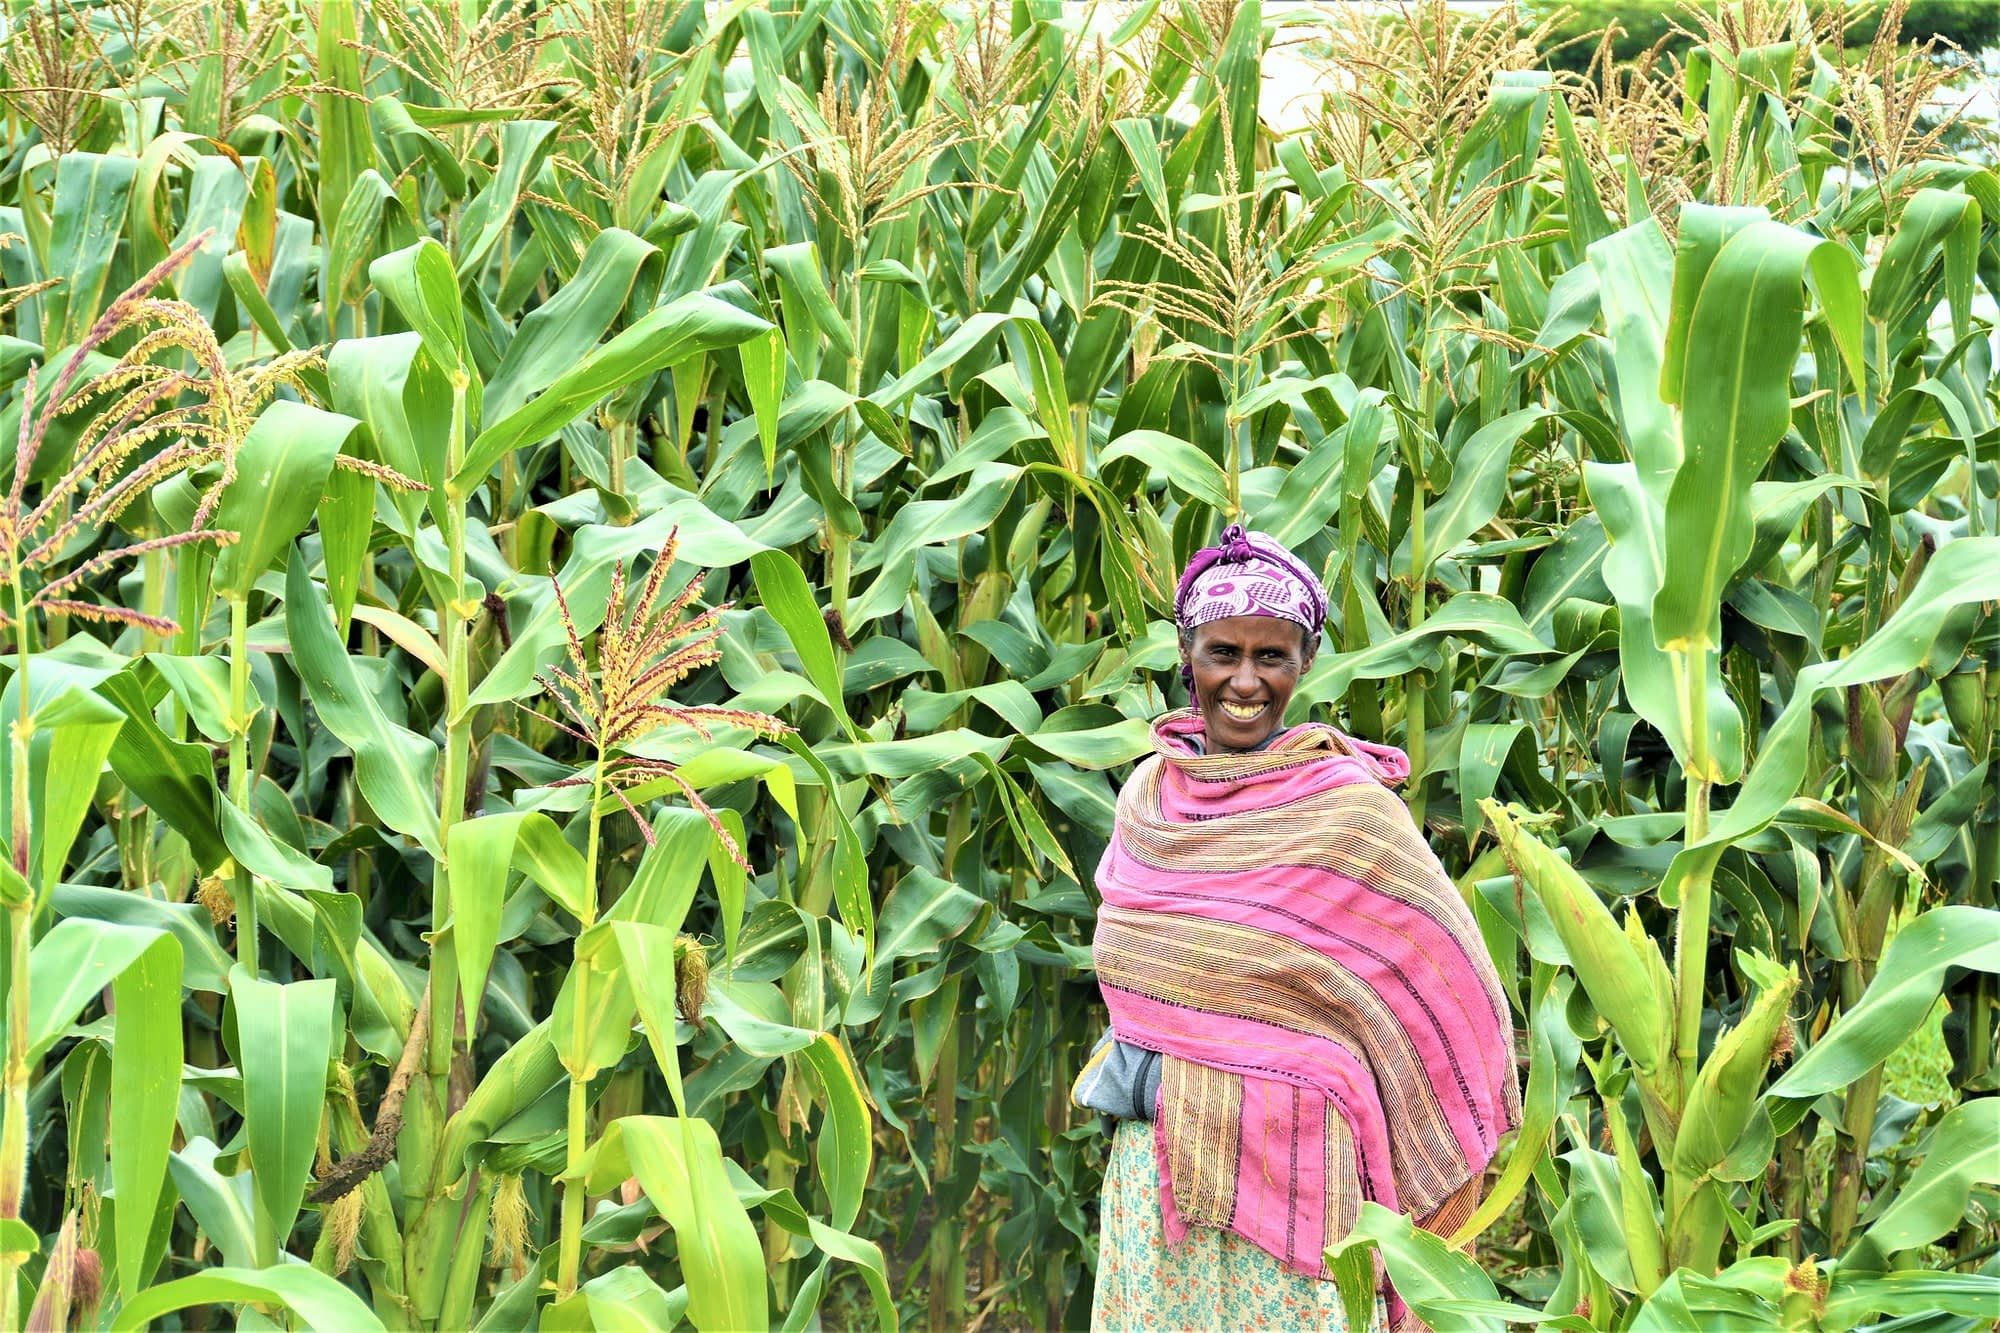 A maize farmer in southern Ethiopia. (Photo: S. Samuel/CCAFS)